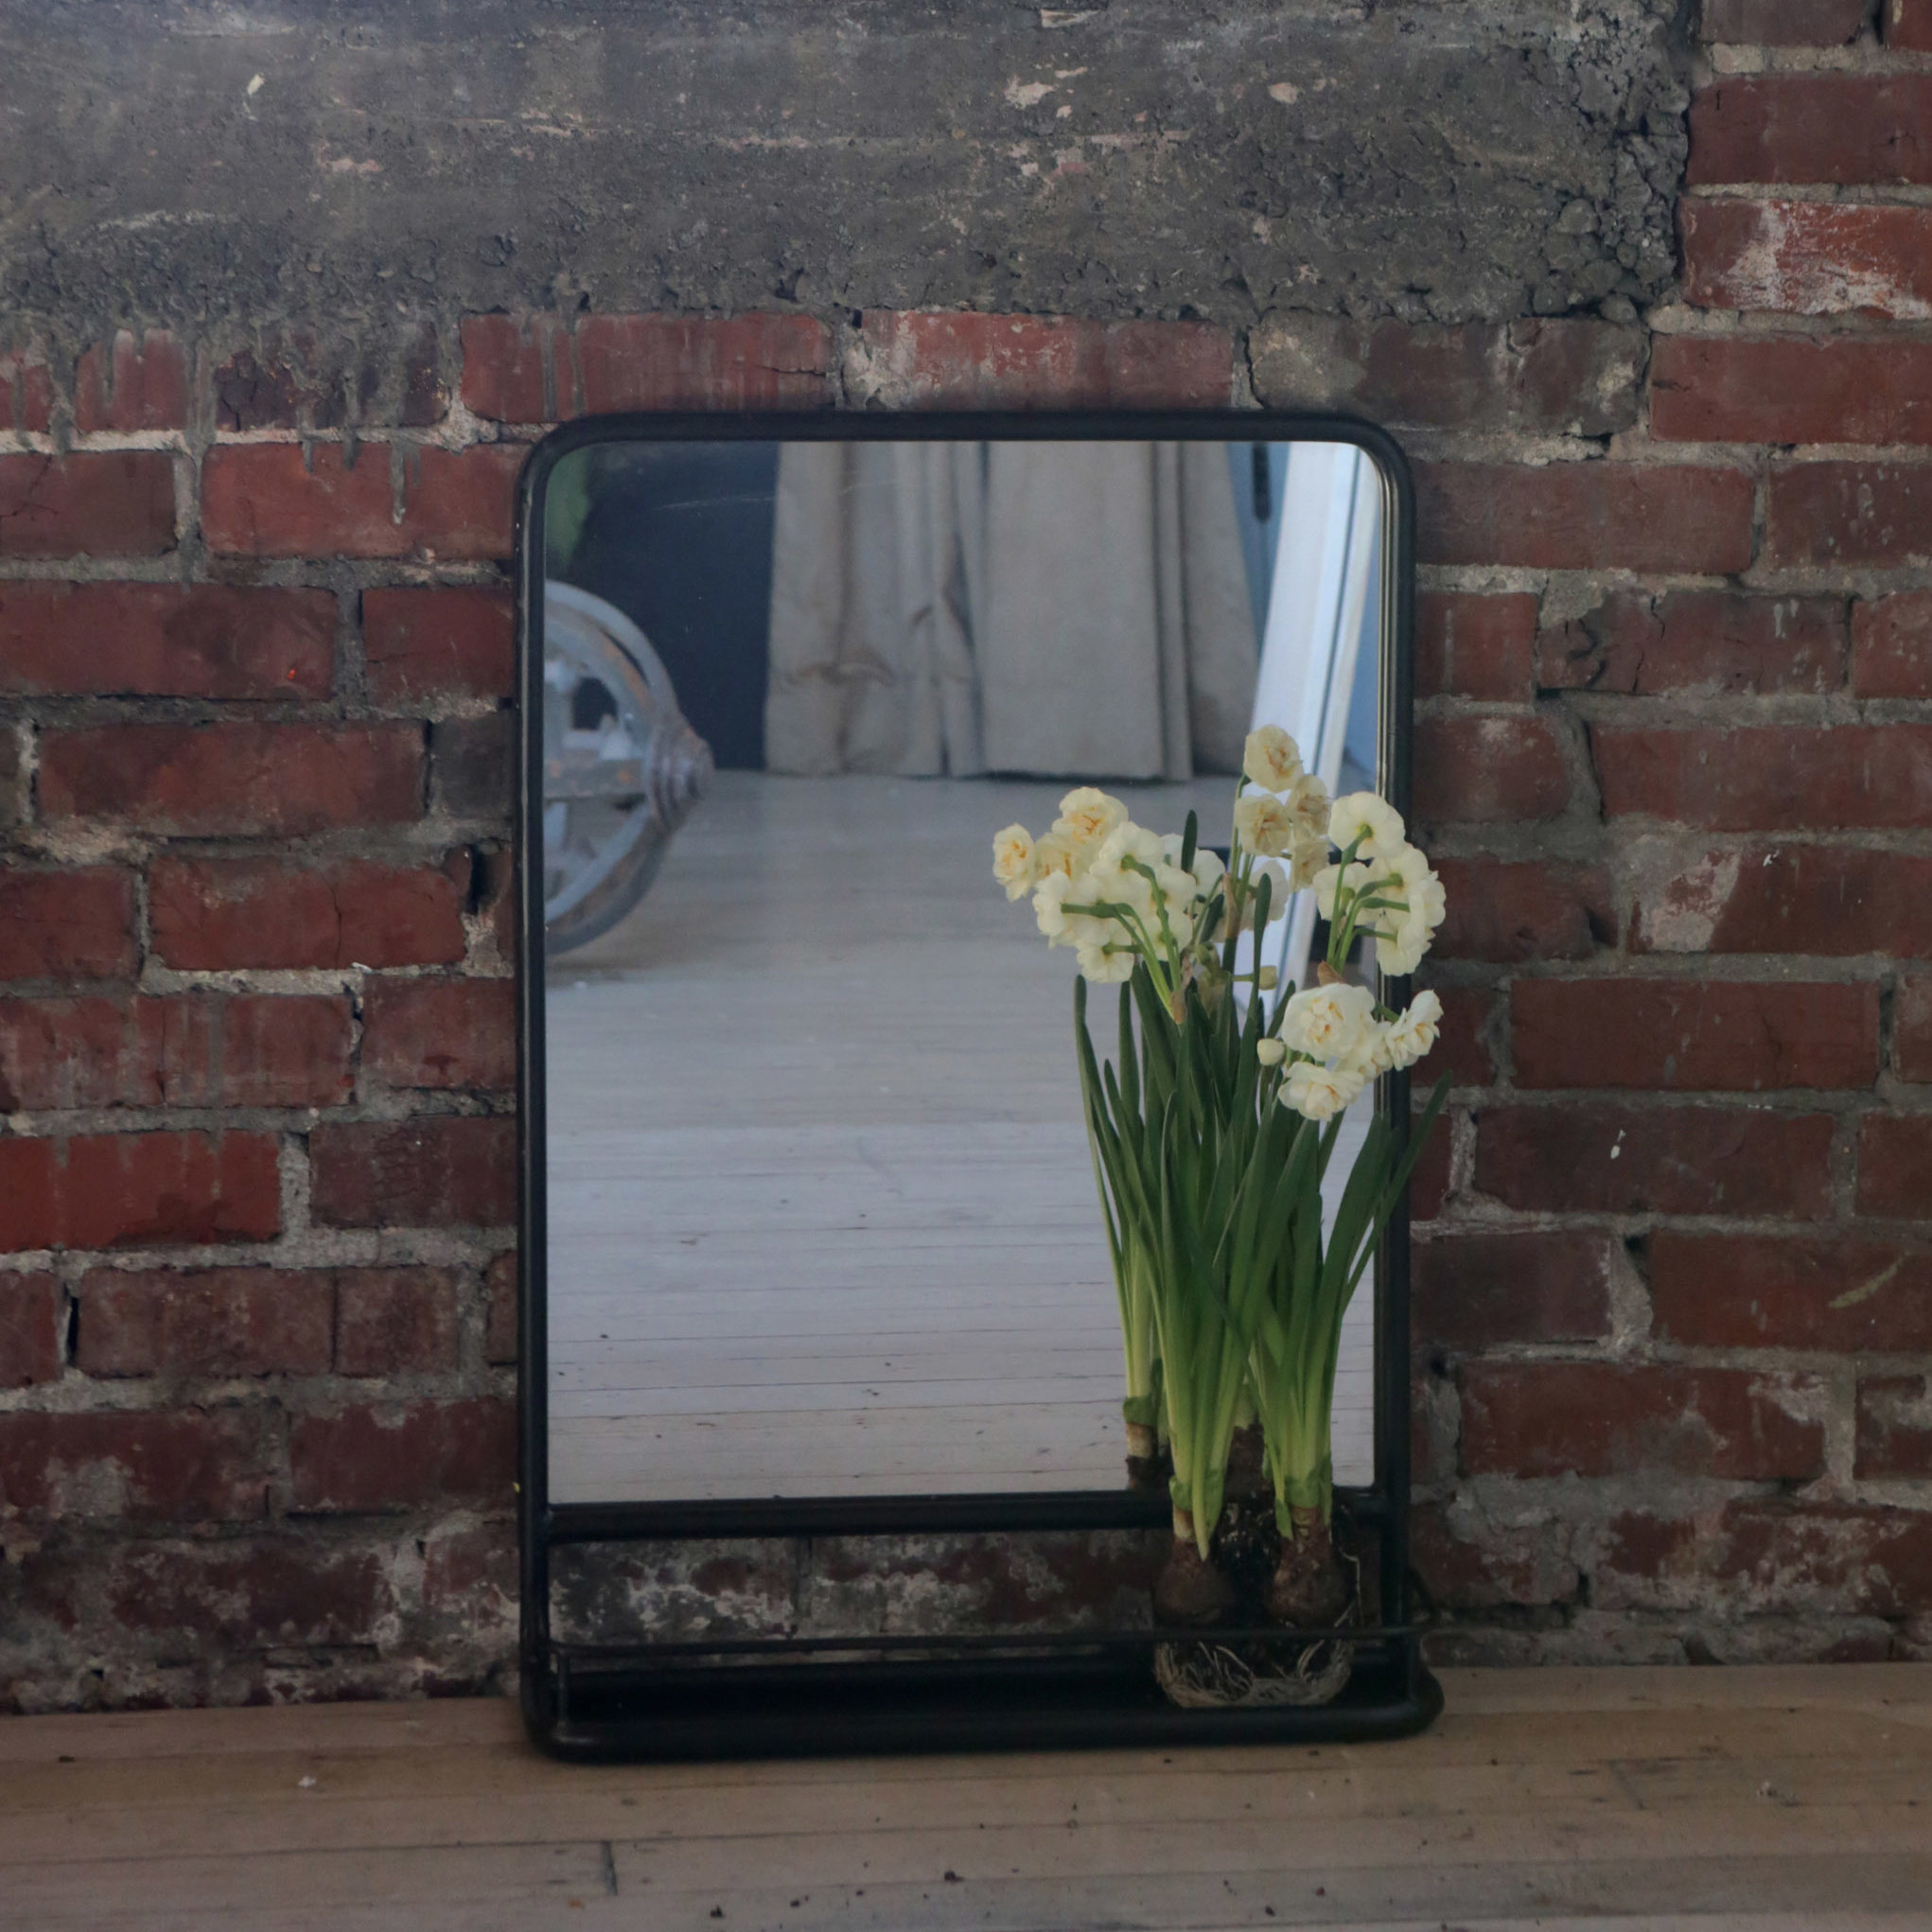 Laurel Foundry Modern Farmhouse Peetz Modern Rustic Accent Mirror throughout Peetz Modern Rustic Accent Mirrors (Image 18 of 30)